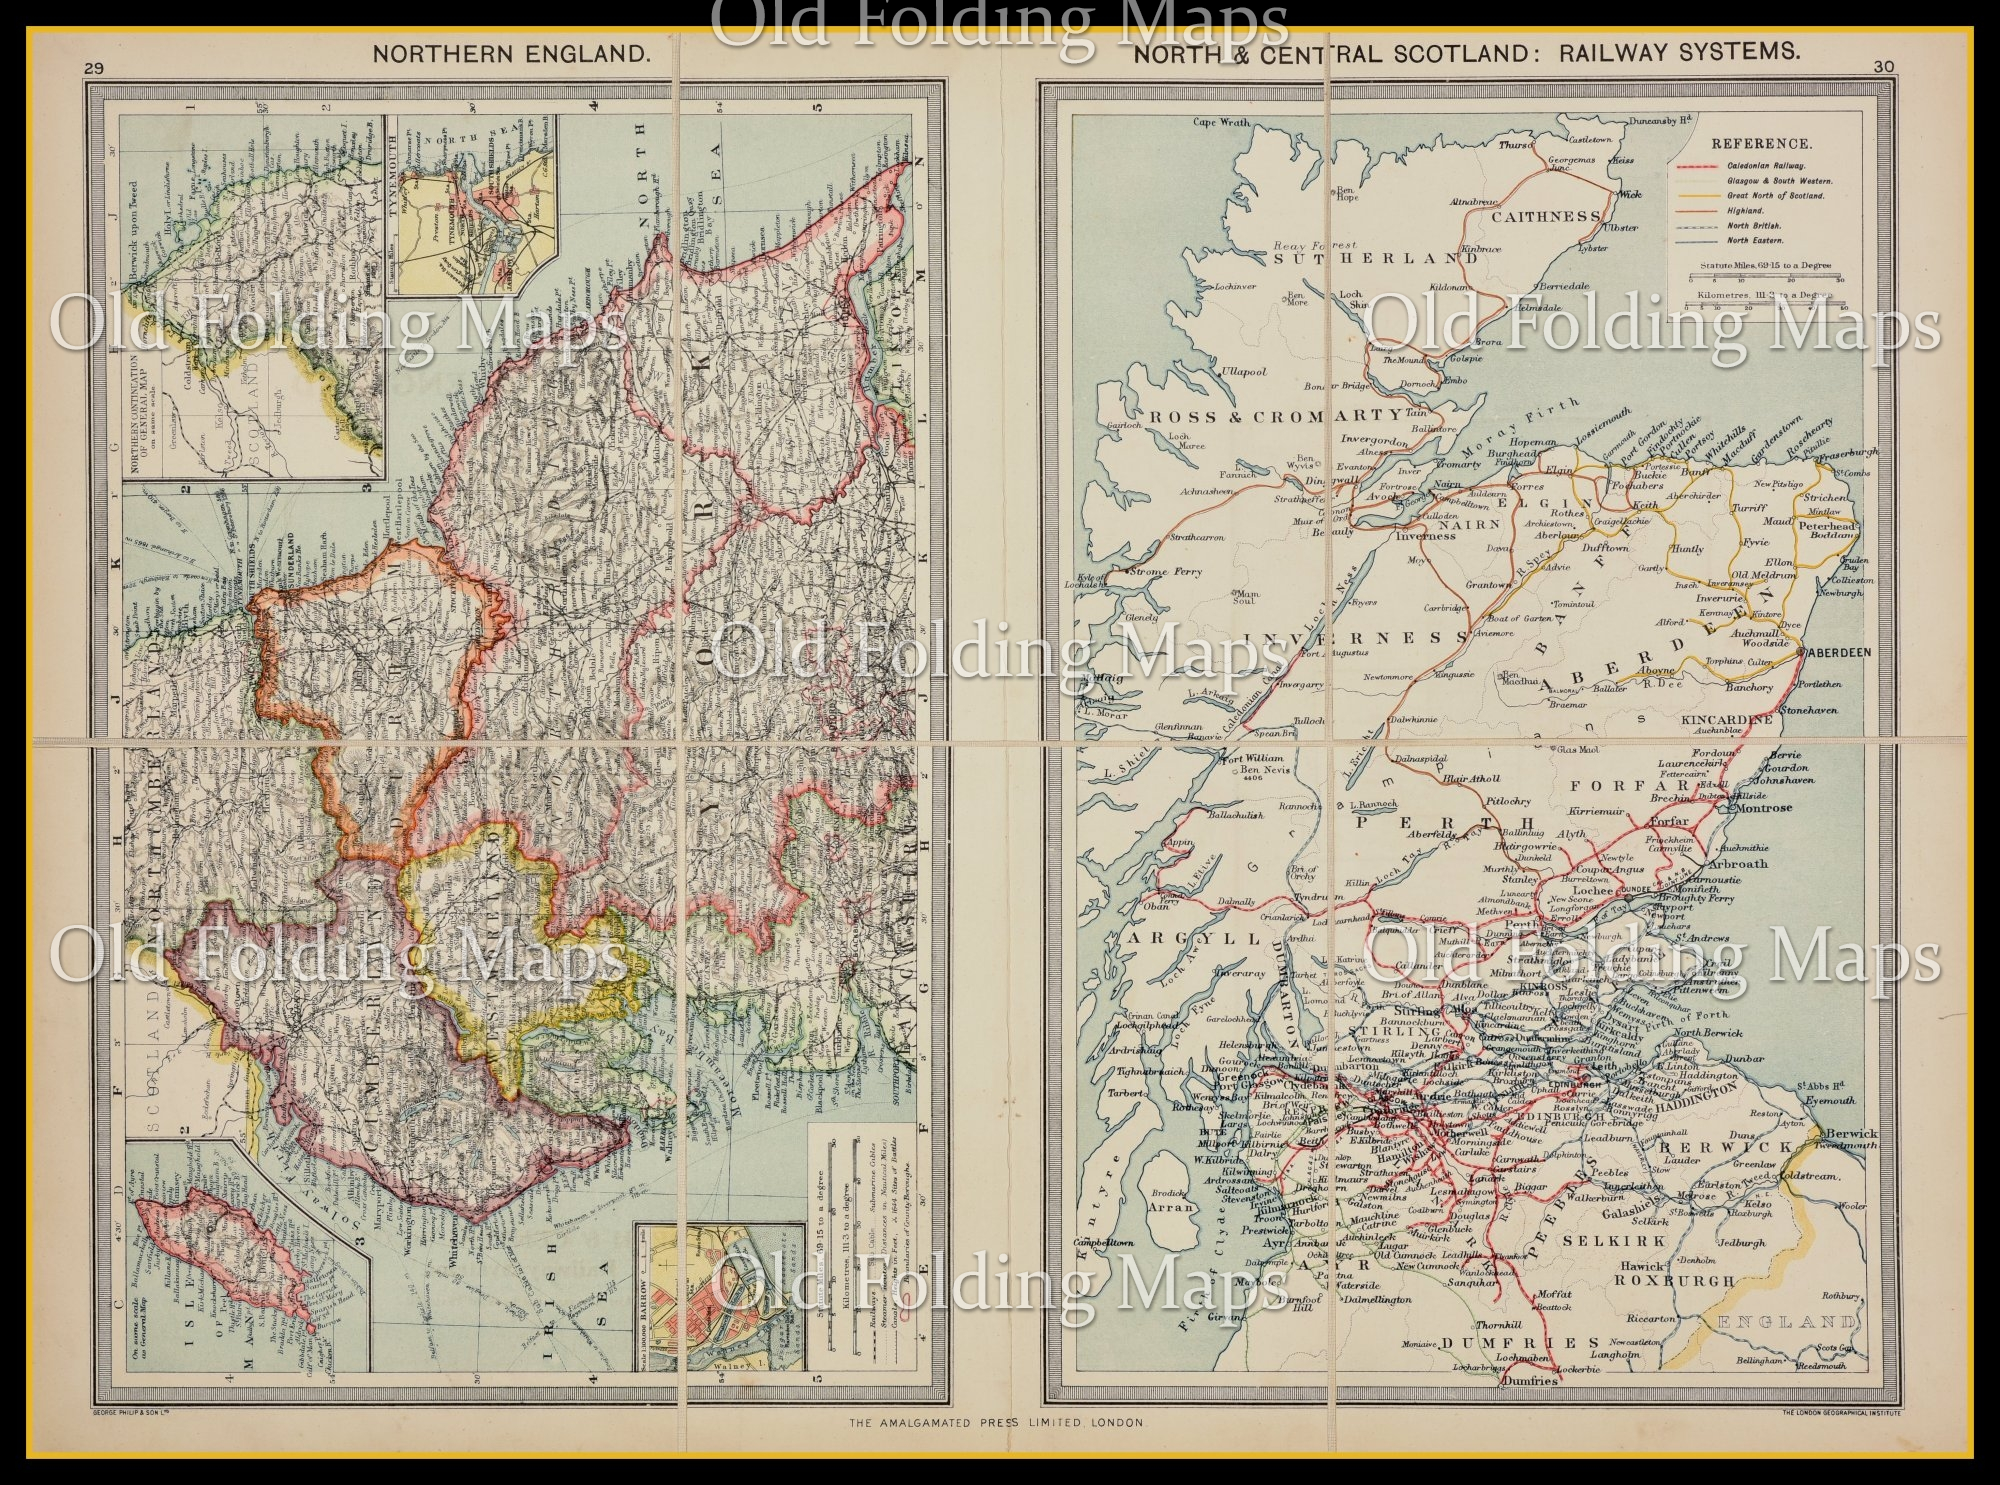 Old Map of The North of England and South Scotland Railway Systems